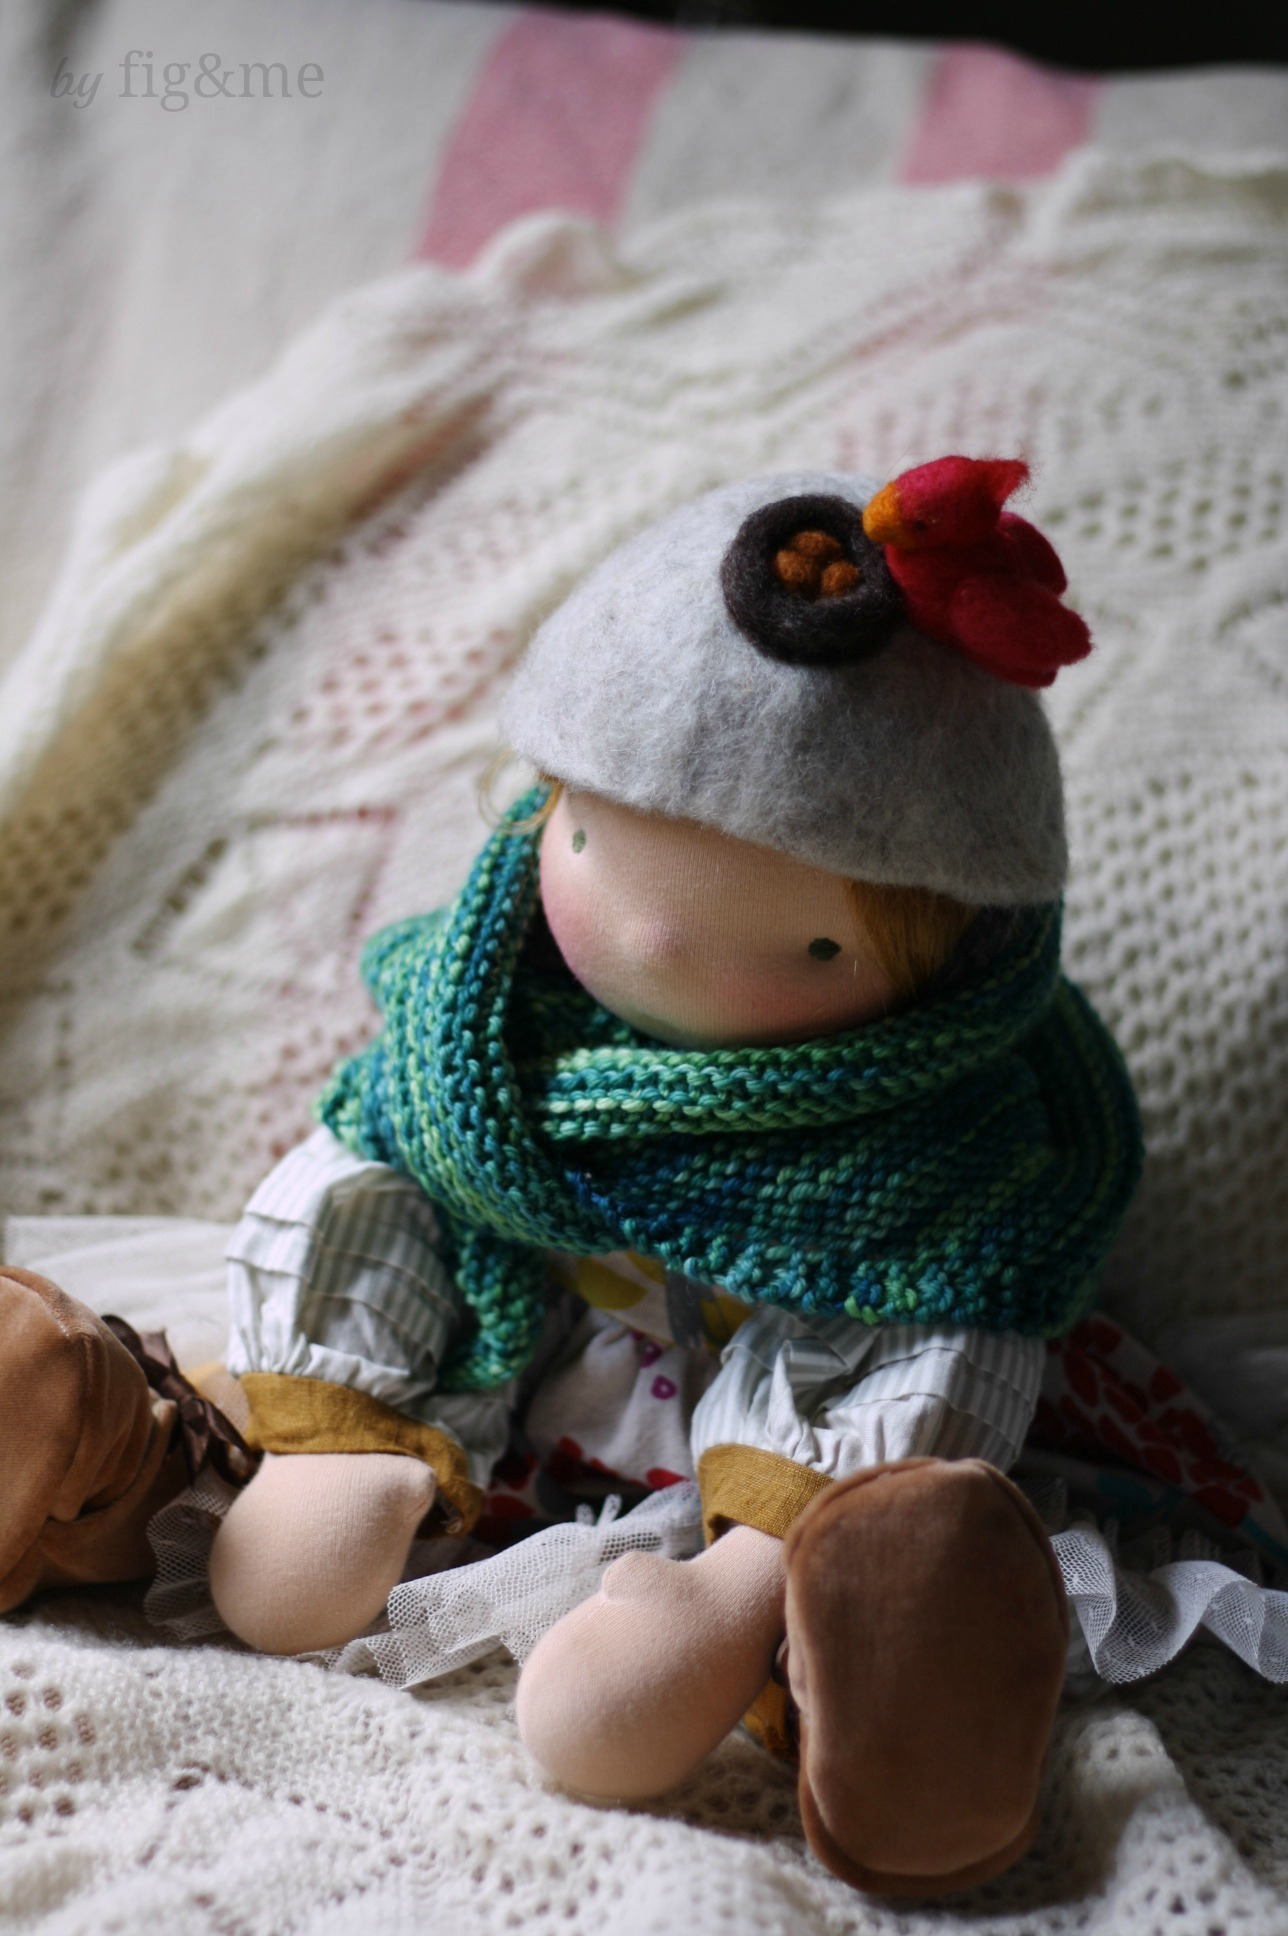 Tonne, a handmade natural doll by Fig and me.